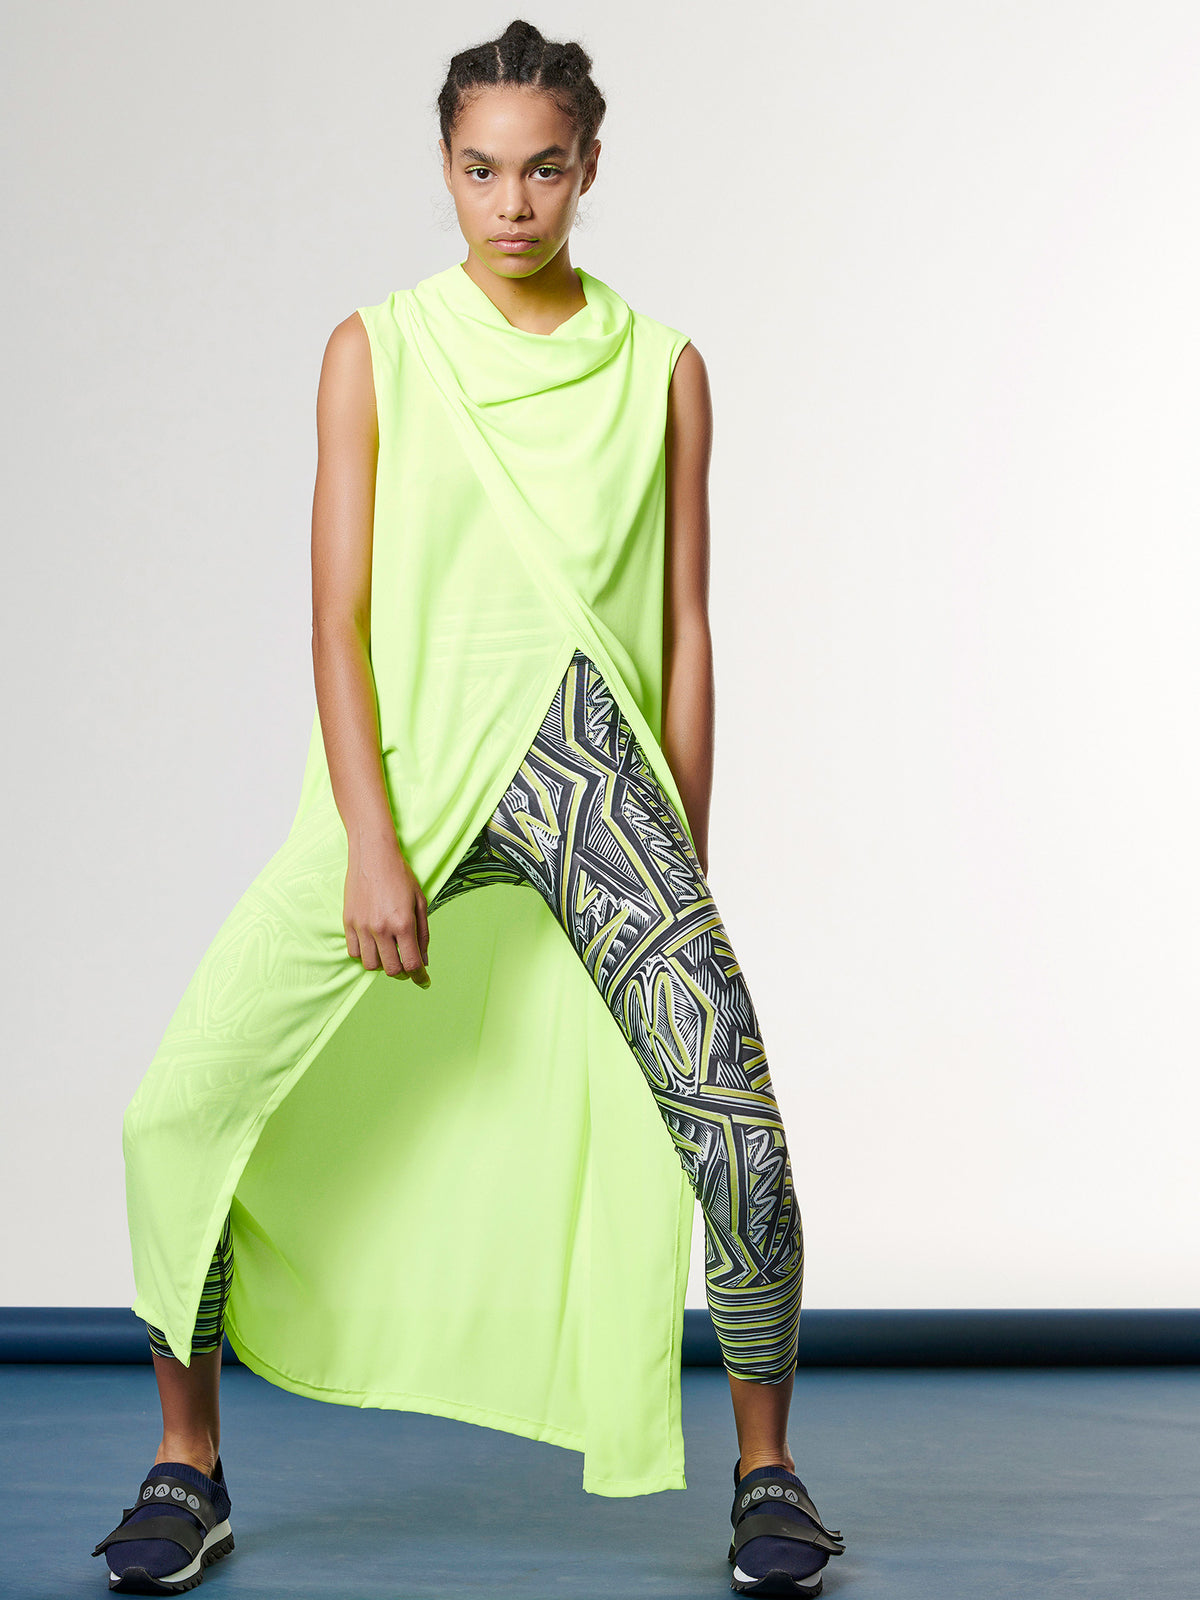 SPORT DRAPE TOP -NEON YELLOW